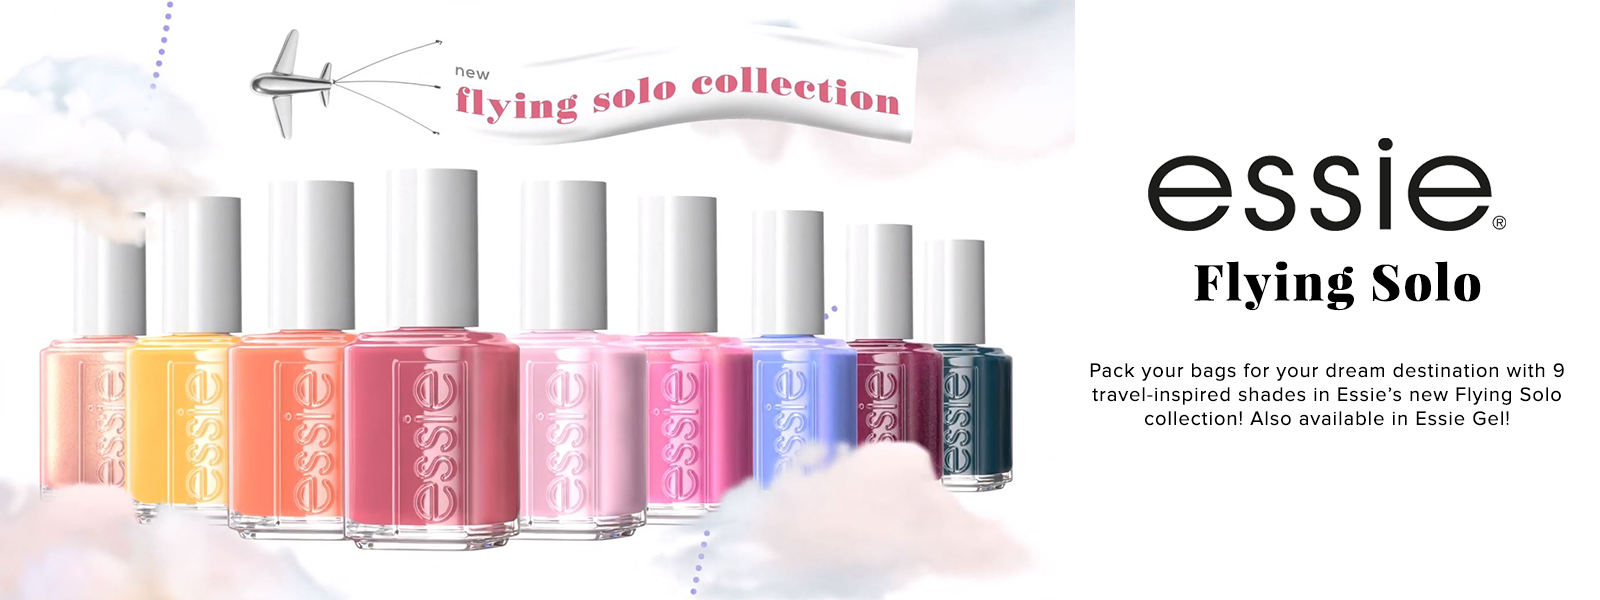 Essie Flying Solo Collection